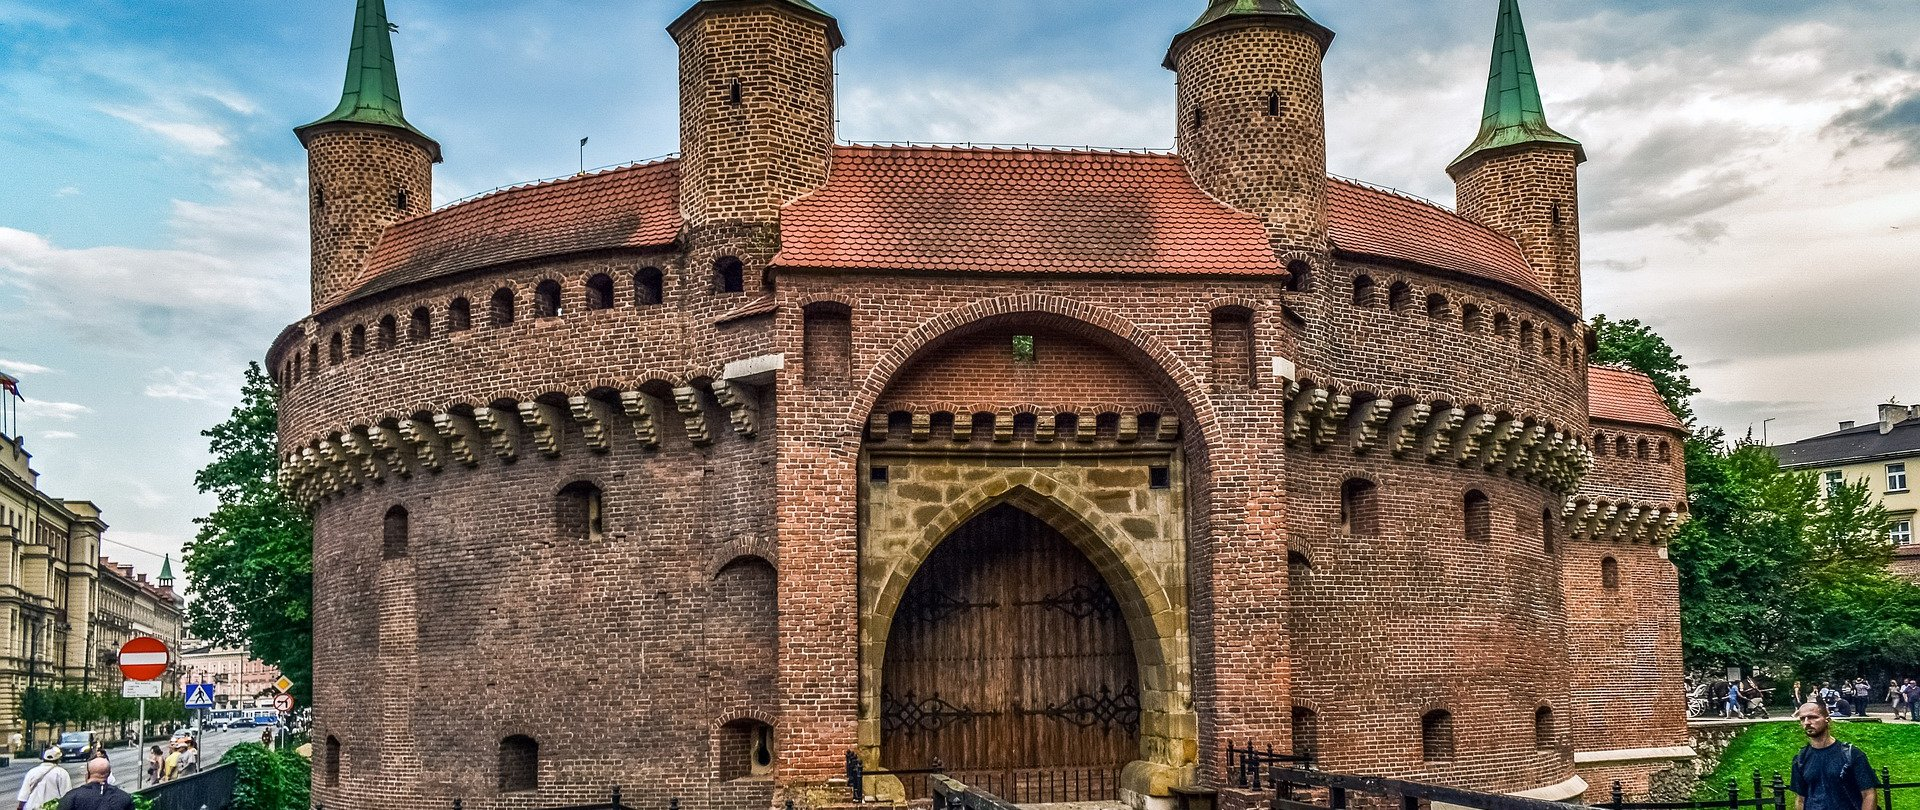 Attractions of Krakow - what attracts tourists?